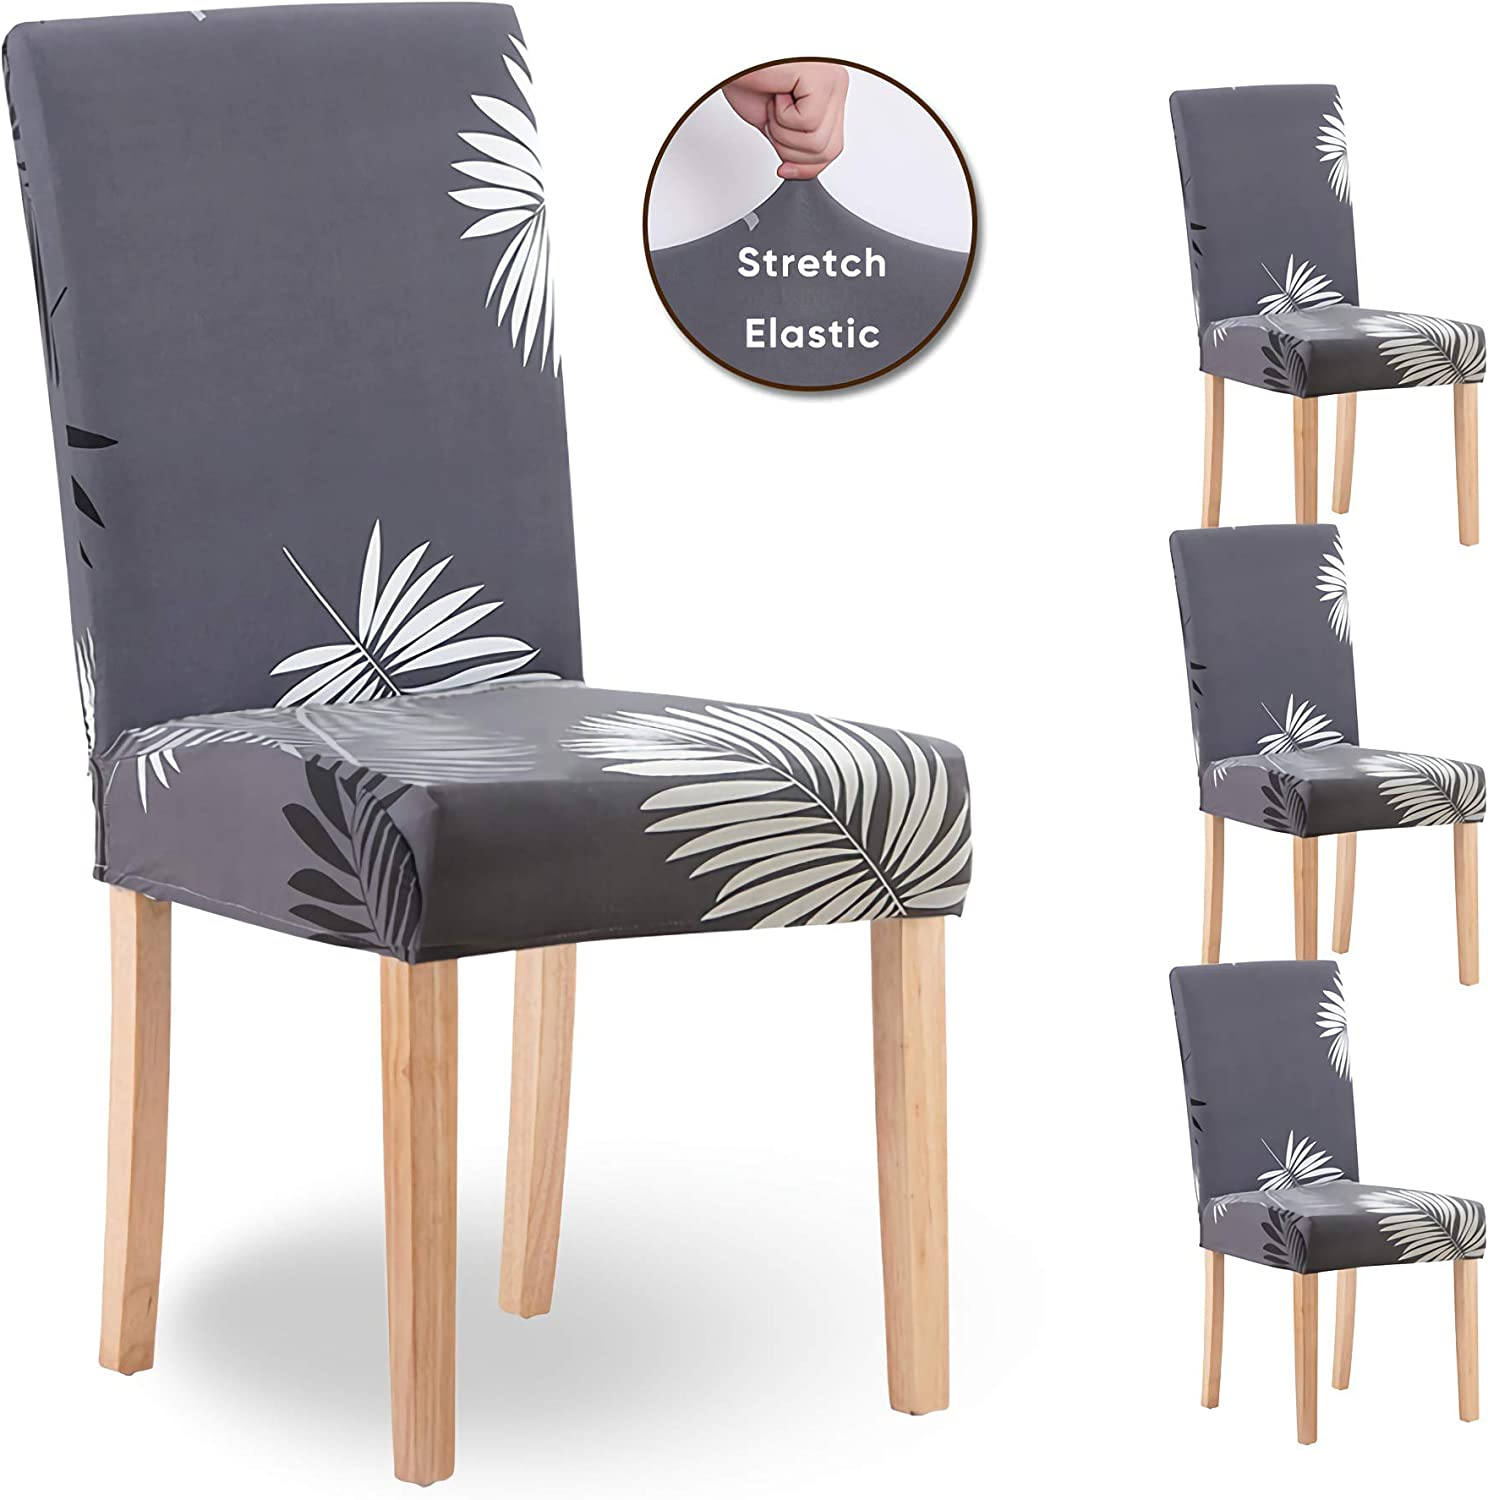 Amazon Com Dining Chair Covers Set Of 4 For Living Room Slip Covers For Furniture Chair Stretch Dining Room Chair Seat Covers For Home Office Desk 4 Pcs Grey Feather Leaf Kitchen Dining